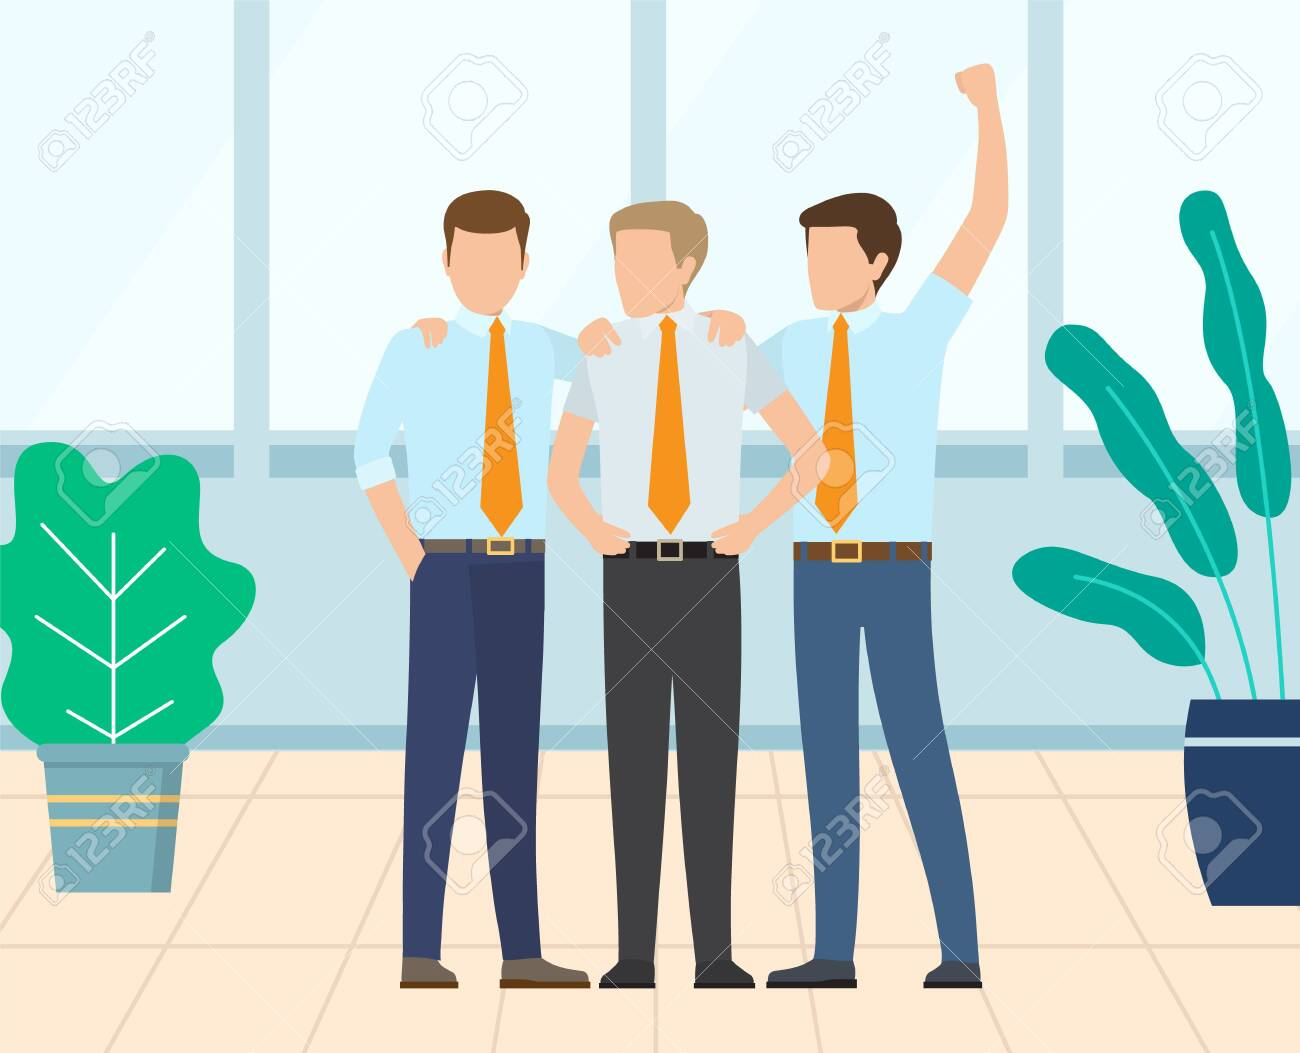 Group of people hugging each other, businessmen standing together, team celebration. Workers employee in suit embracing, teamwork success and win vector - 135237031